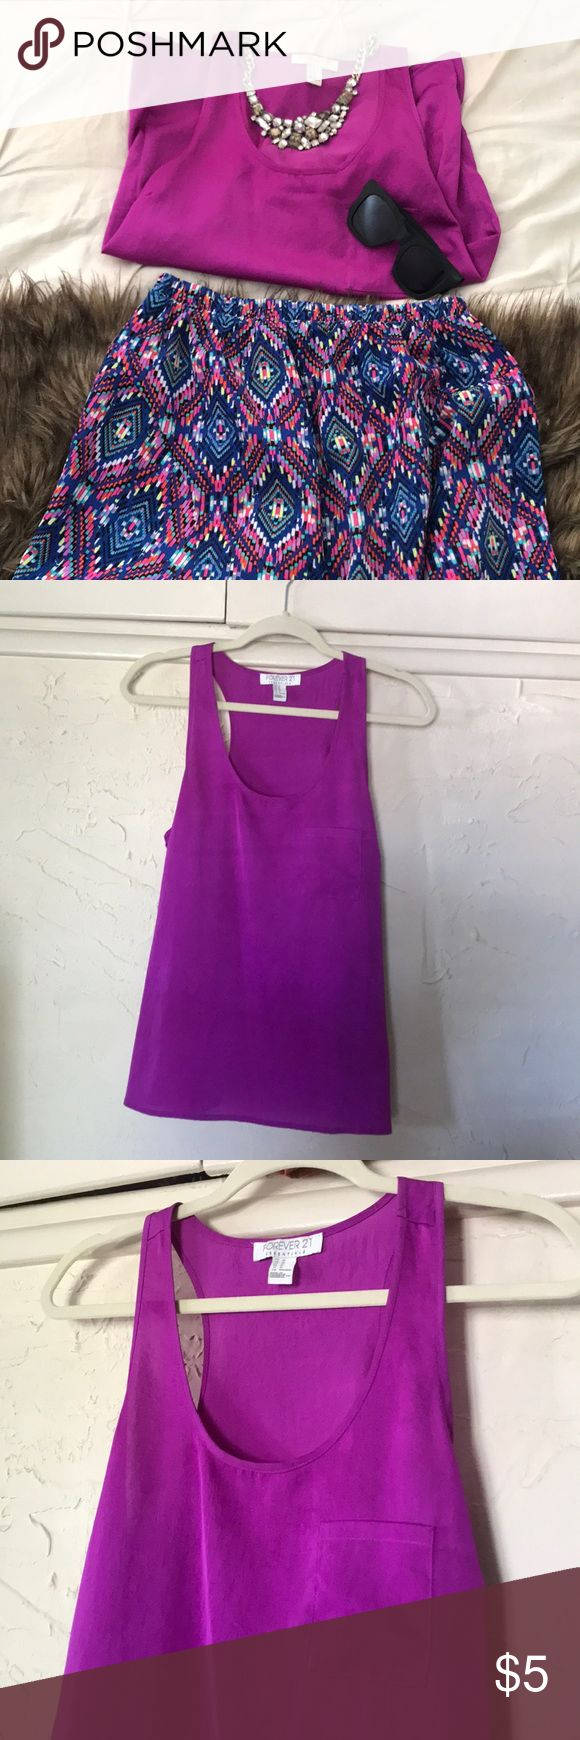 Magenta racer back tank by Forever 21, size Medium Super cute magenta, racer back tank from Forever 21, size Medium. 100 % polyester, feels like silk. Dress it up with a skirt and heels or down with jeans and statement necklace! Forever 21 Tops Tank Tops